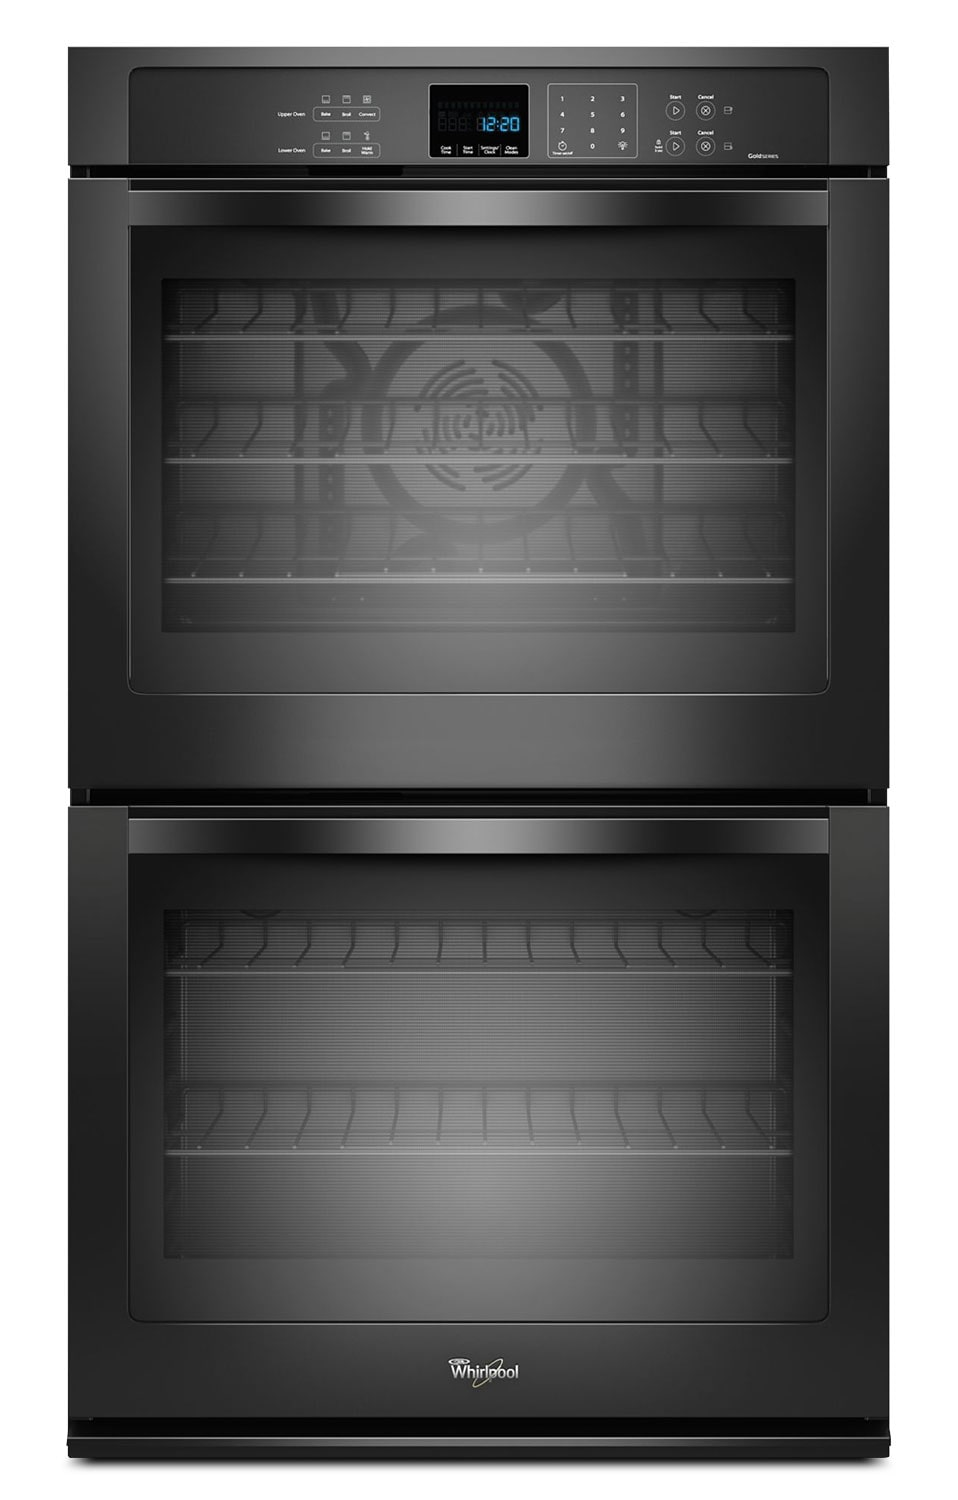 Cooking Products - Whirlpool Black Electric Convection Double Wall Oven (10.0 Cu. Ft.) - WOD93EC0AB